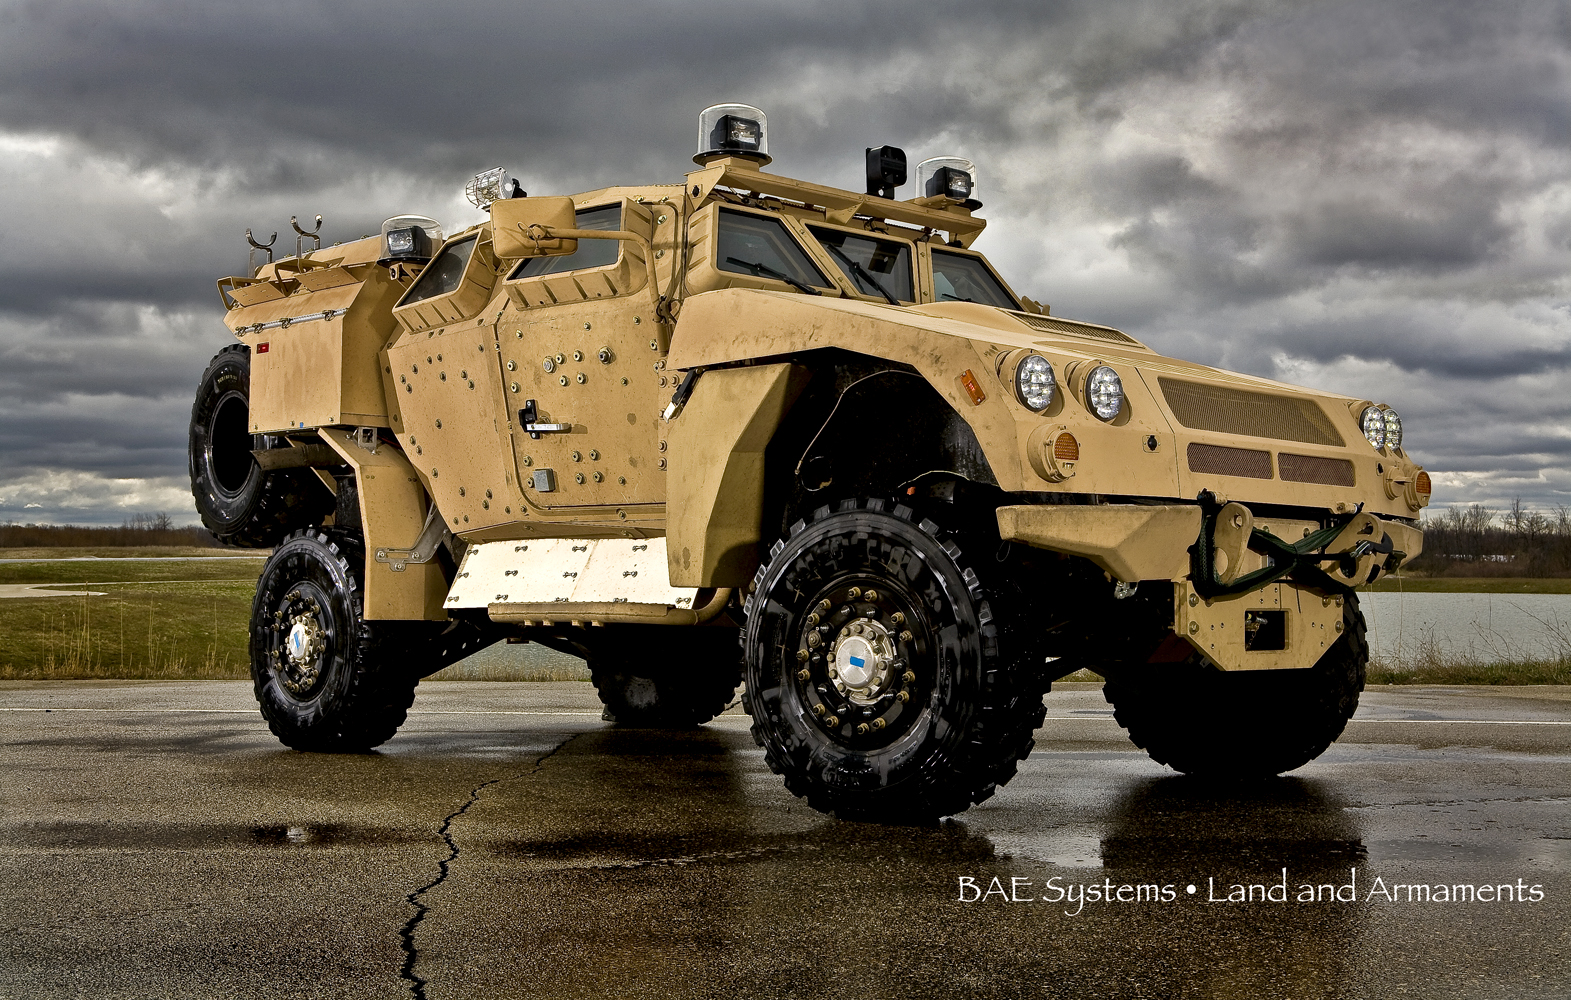 Metro Detroit product photographer Jeff White photographs vehicles for BAE Systems